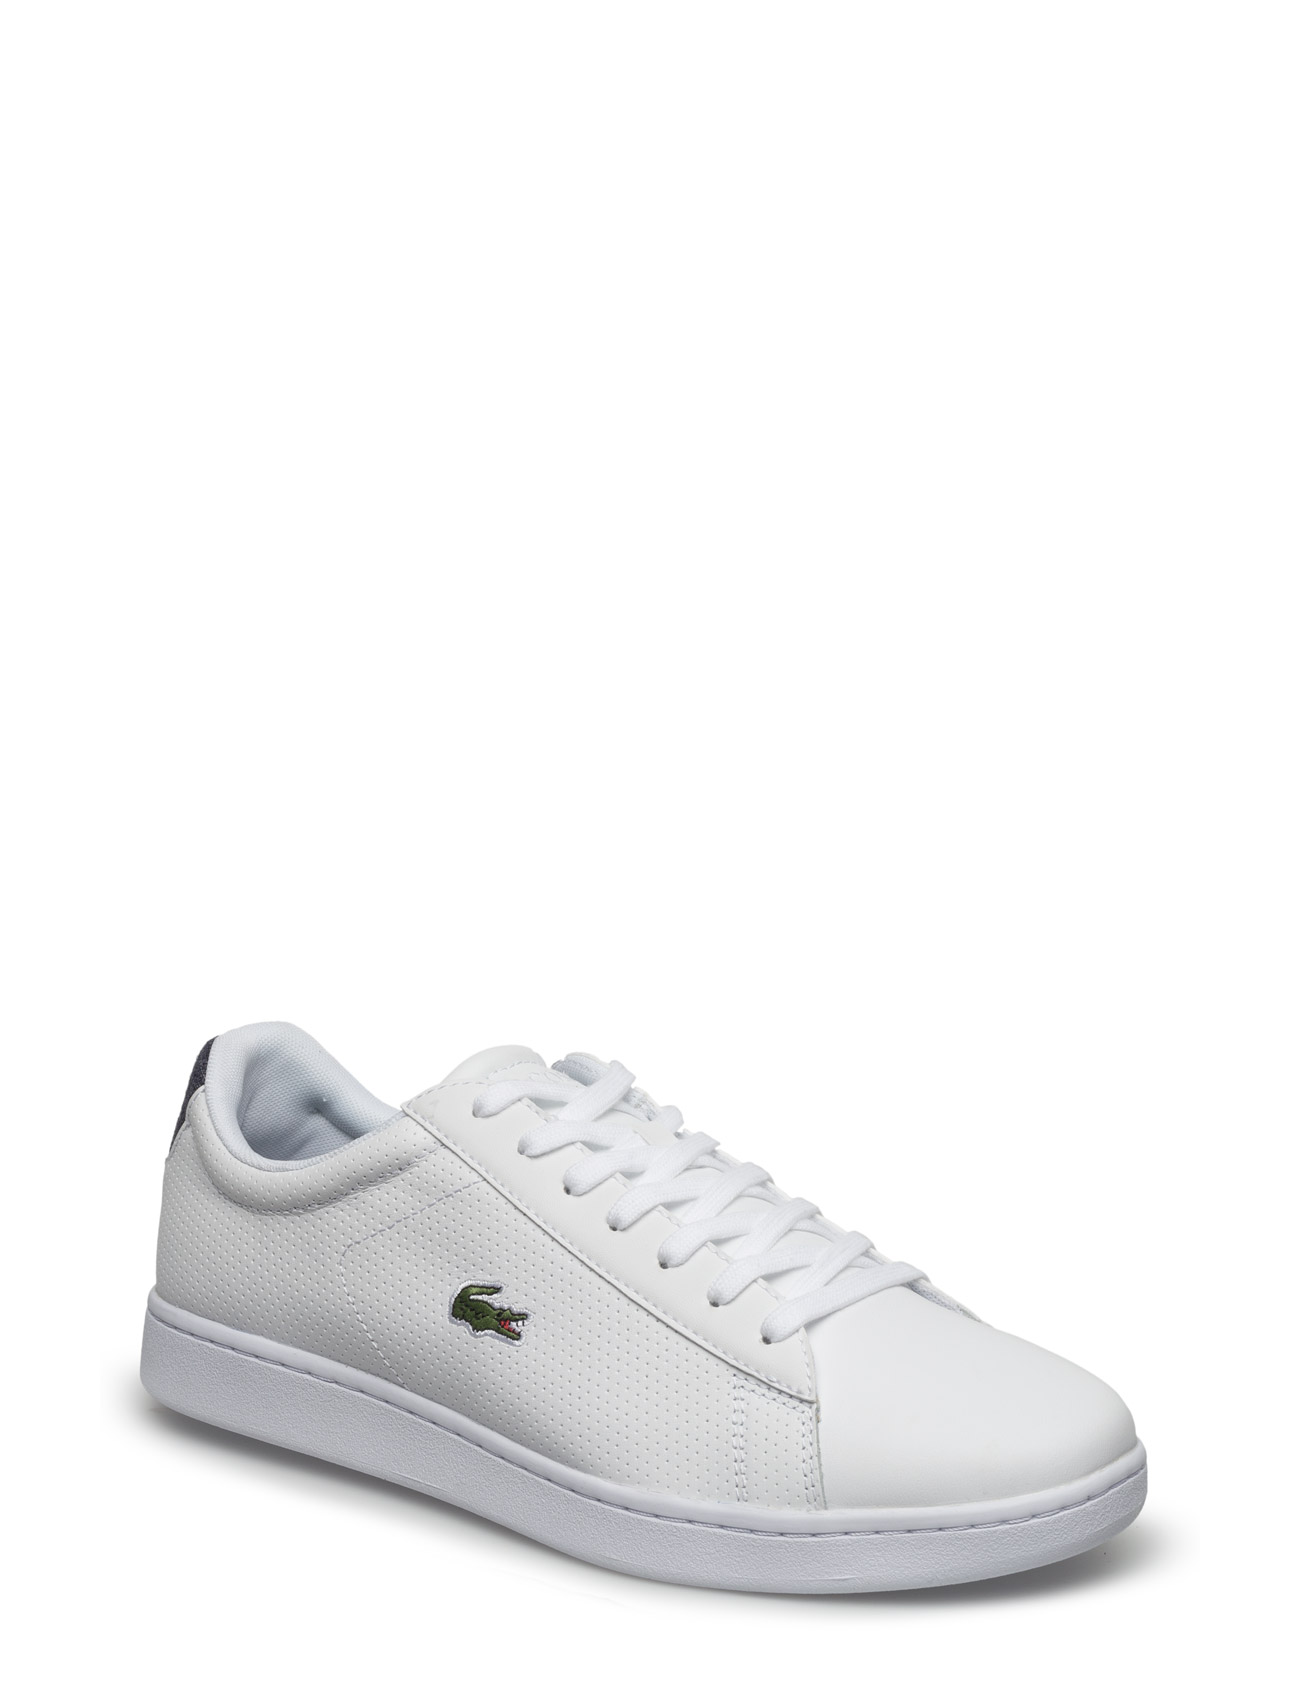 lacoste shoes Carnaby evo 217 1 på boozt.com dk